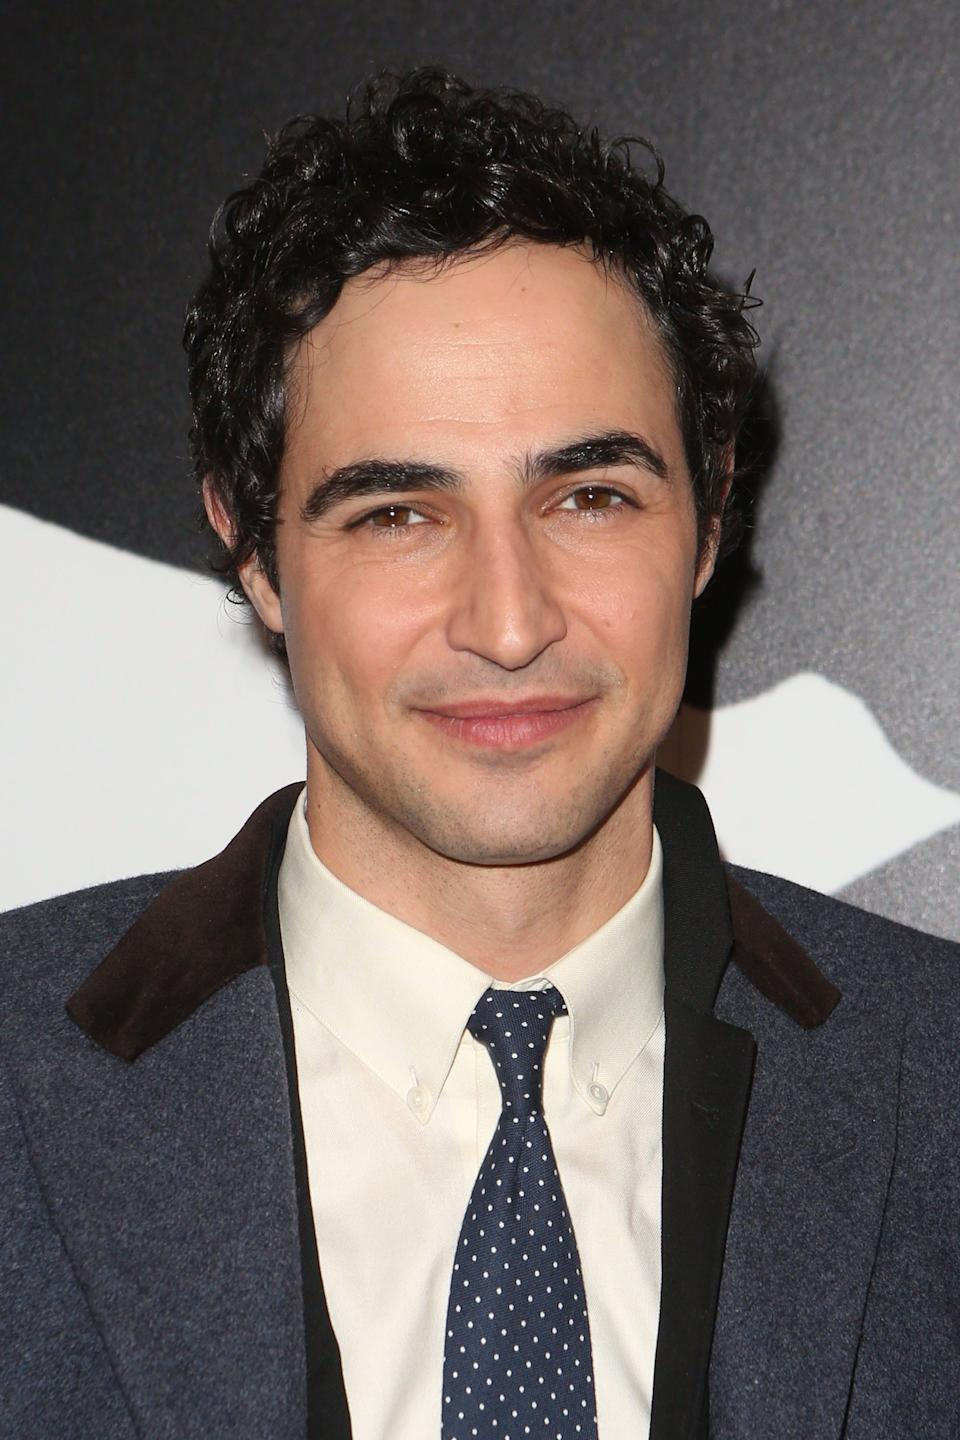 """Posen said in March 2017 that he doesn't plan on <a href=""""http://www.huffingtonpost.com/entry/zac-posen-doesnt-want-to-dress-the-trumps_us_58c6a9d6e4b0ed71826dfefd"""">dressing the first lady</a> any time soon. """"I'm staying away from bringing my brand into politics,"""" he said, citing """"issues that are being questioned that are fundamentally upsetting"""" to him including LGBT and women's rights."""